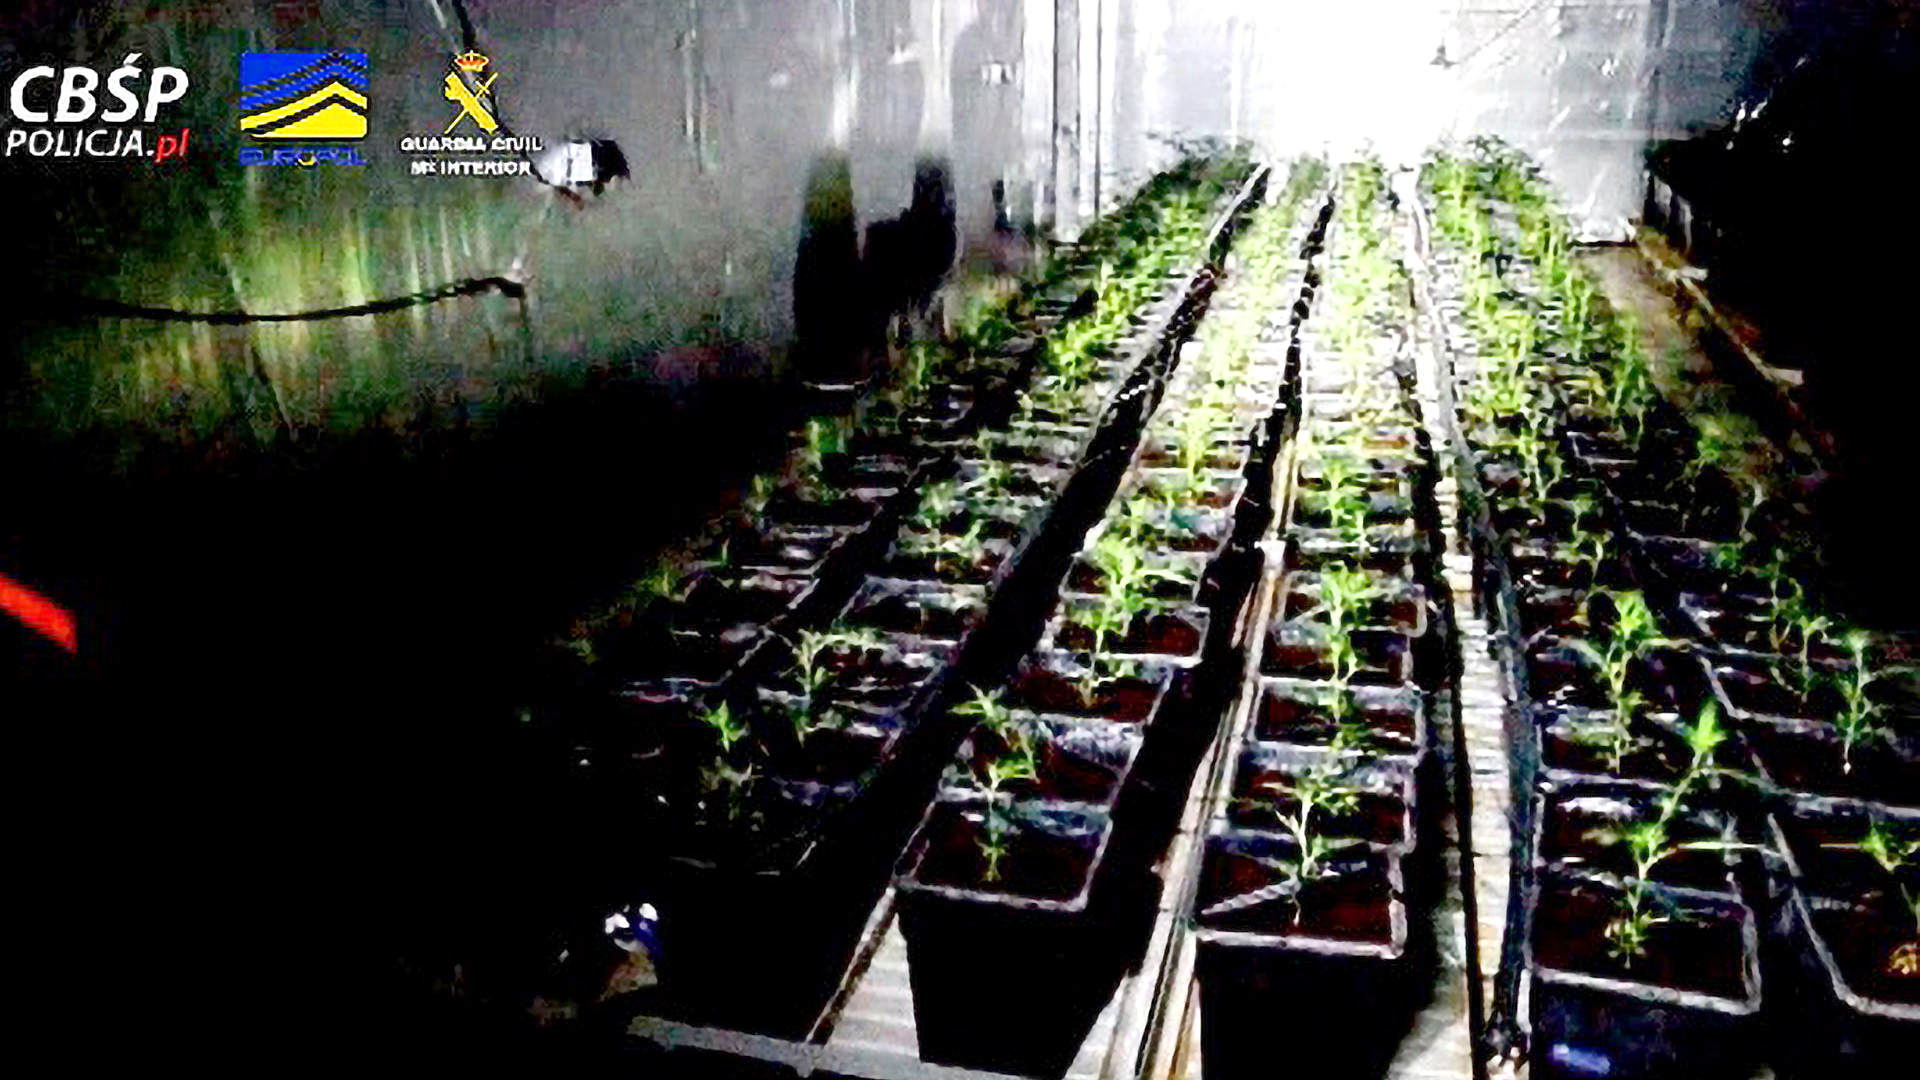 20,000 Cannabis Plants Seized in Europe-Wide Drugs Crackdown